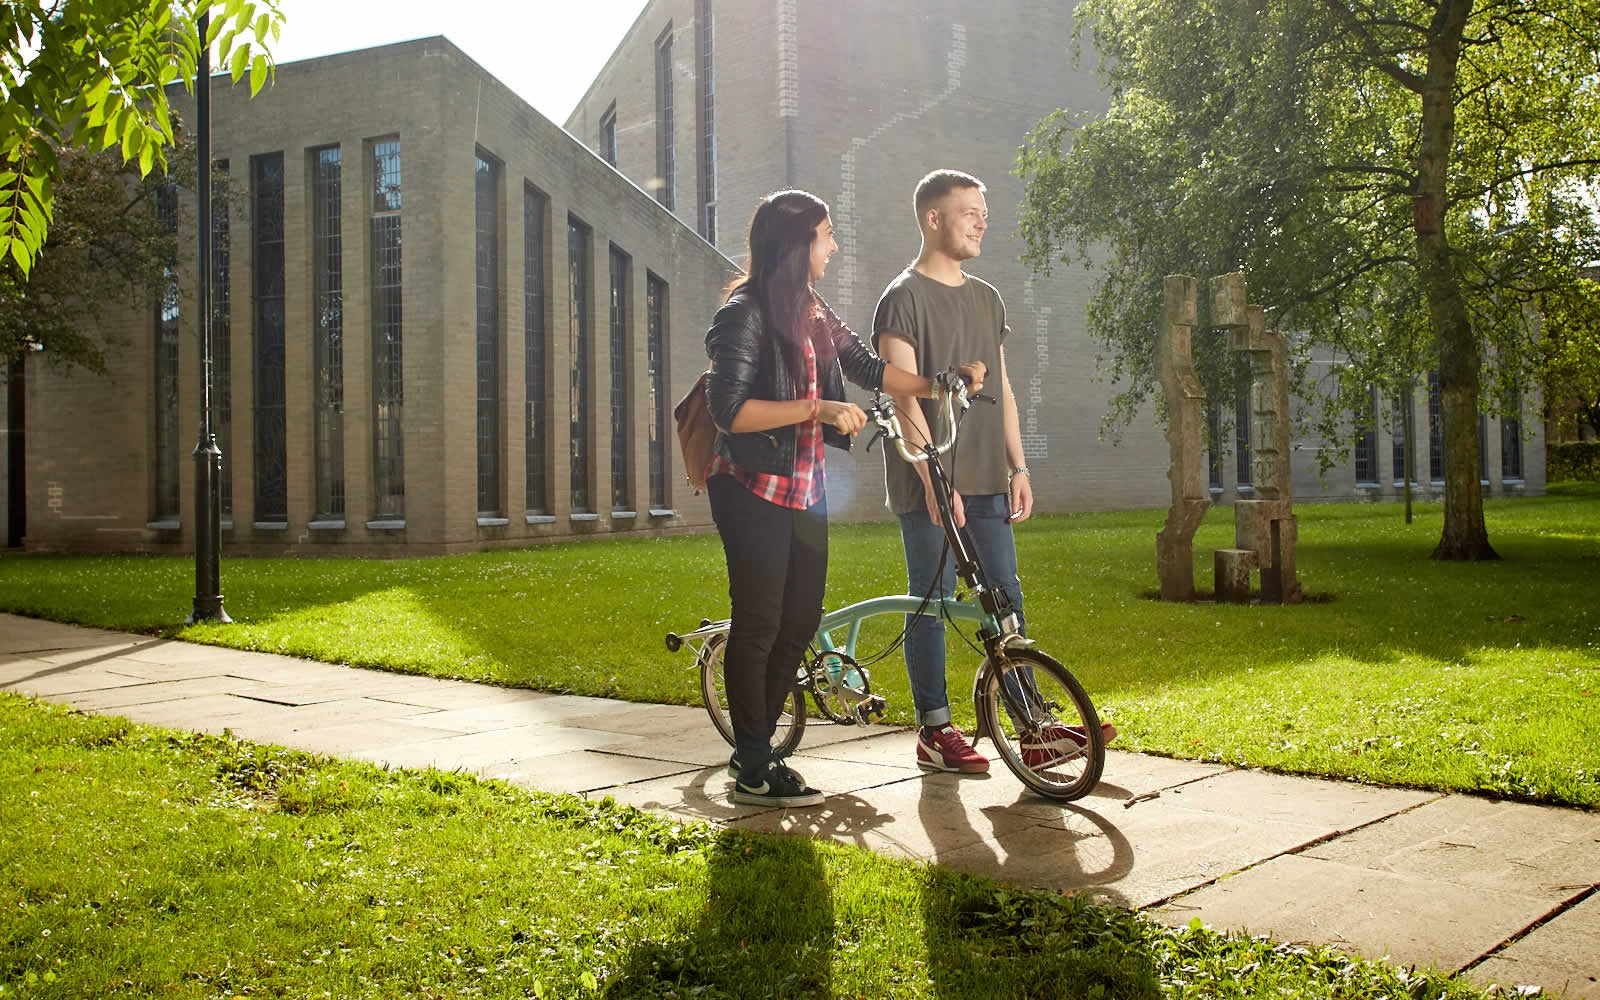 Students walking on campus in the sun